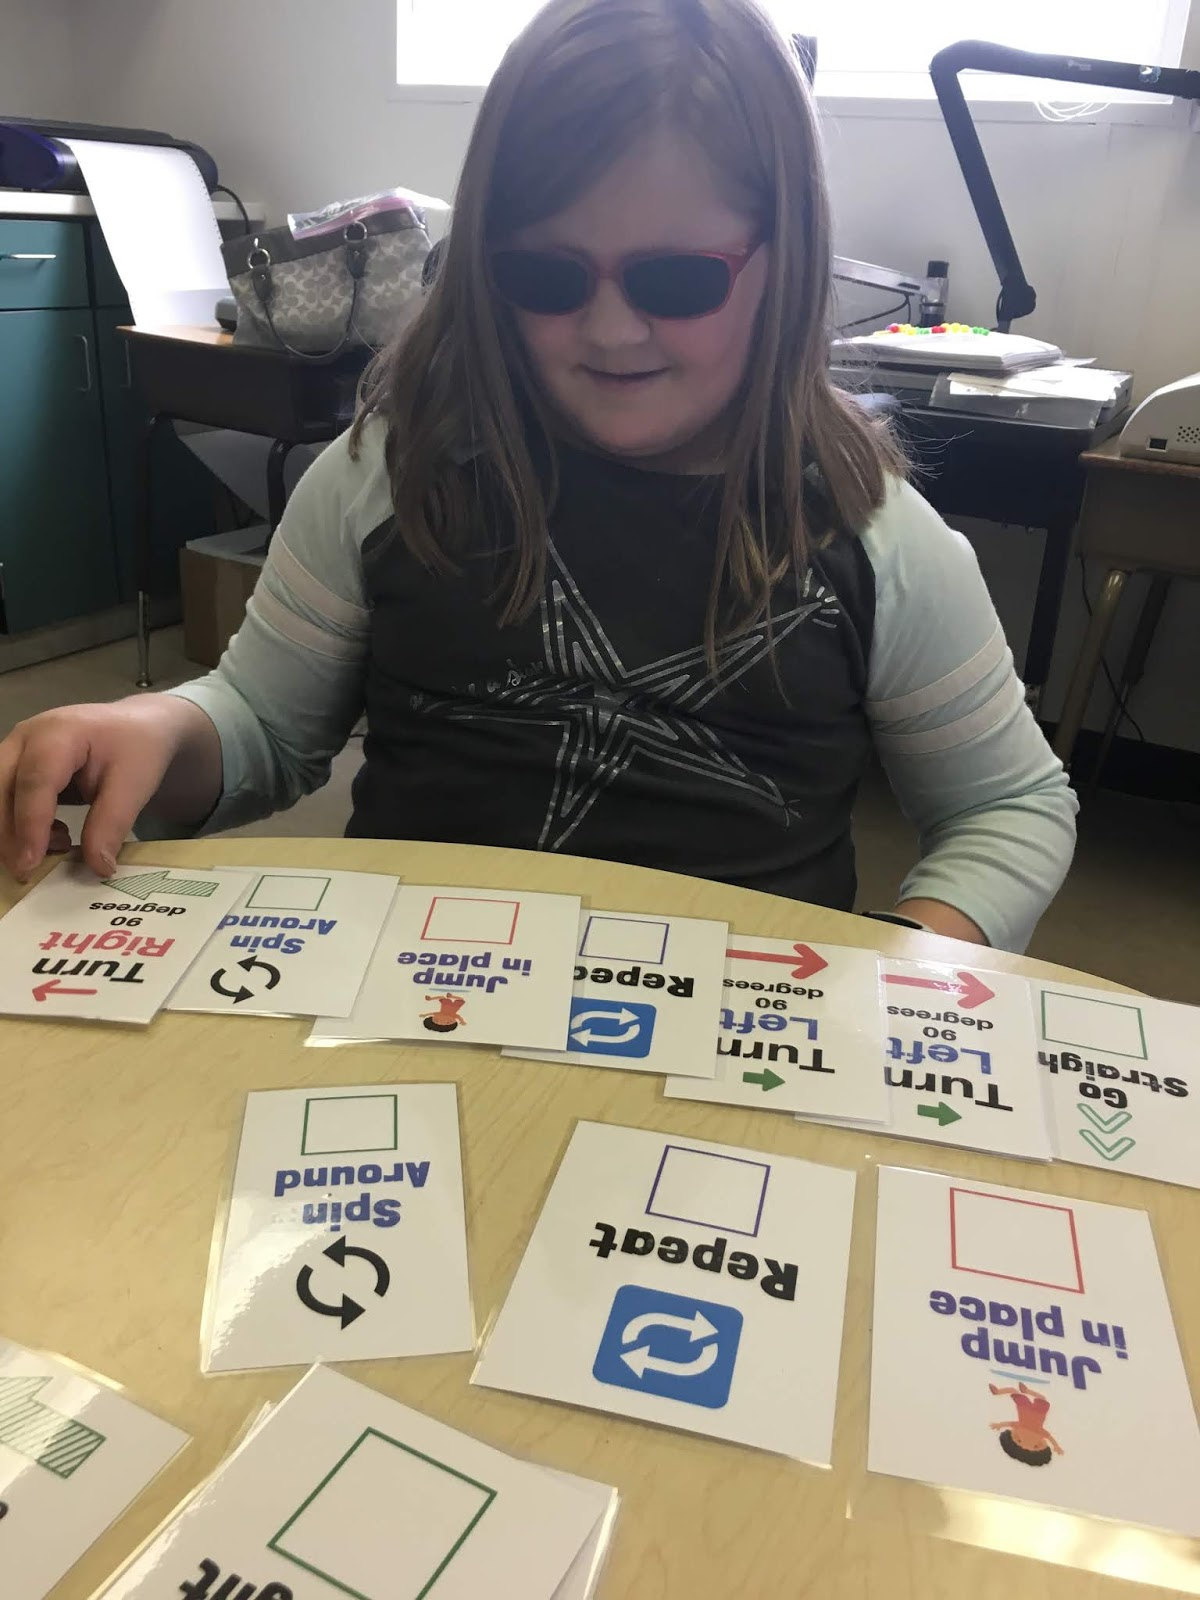 A female student arranges the cards into a line of code